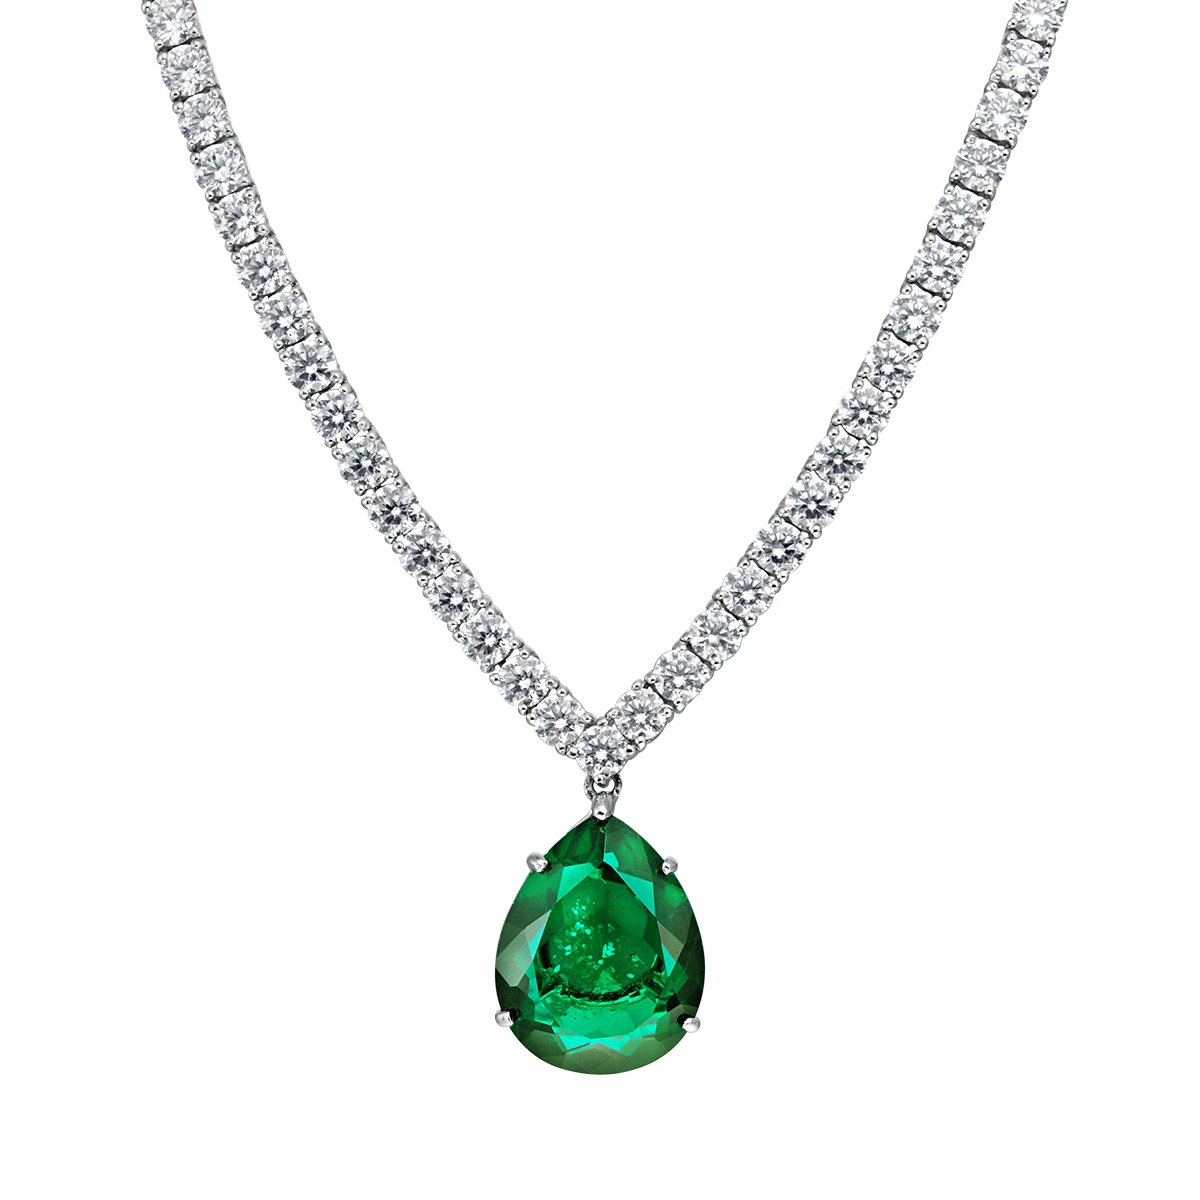 Necklace clipart emerald. Png images free download